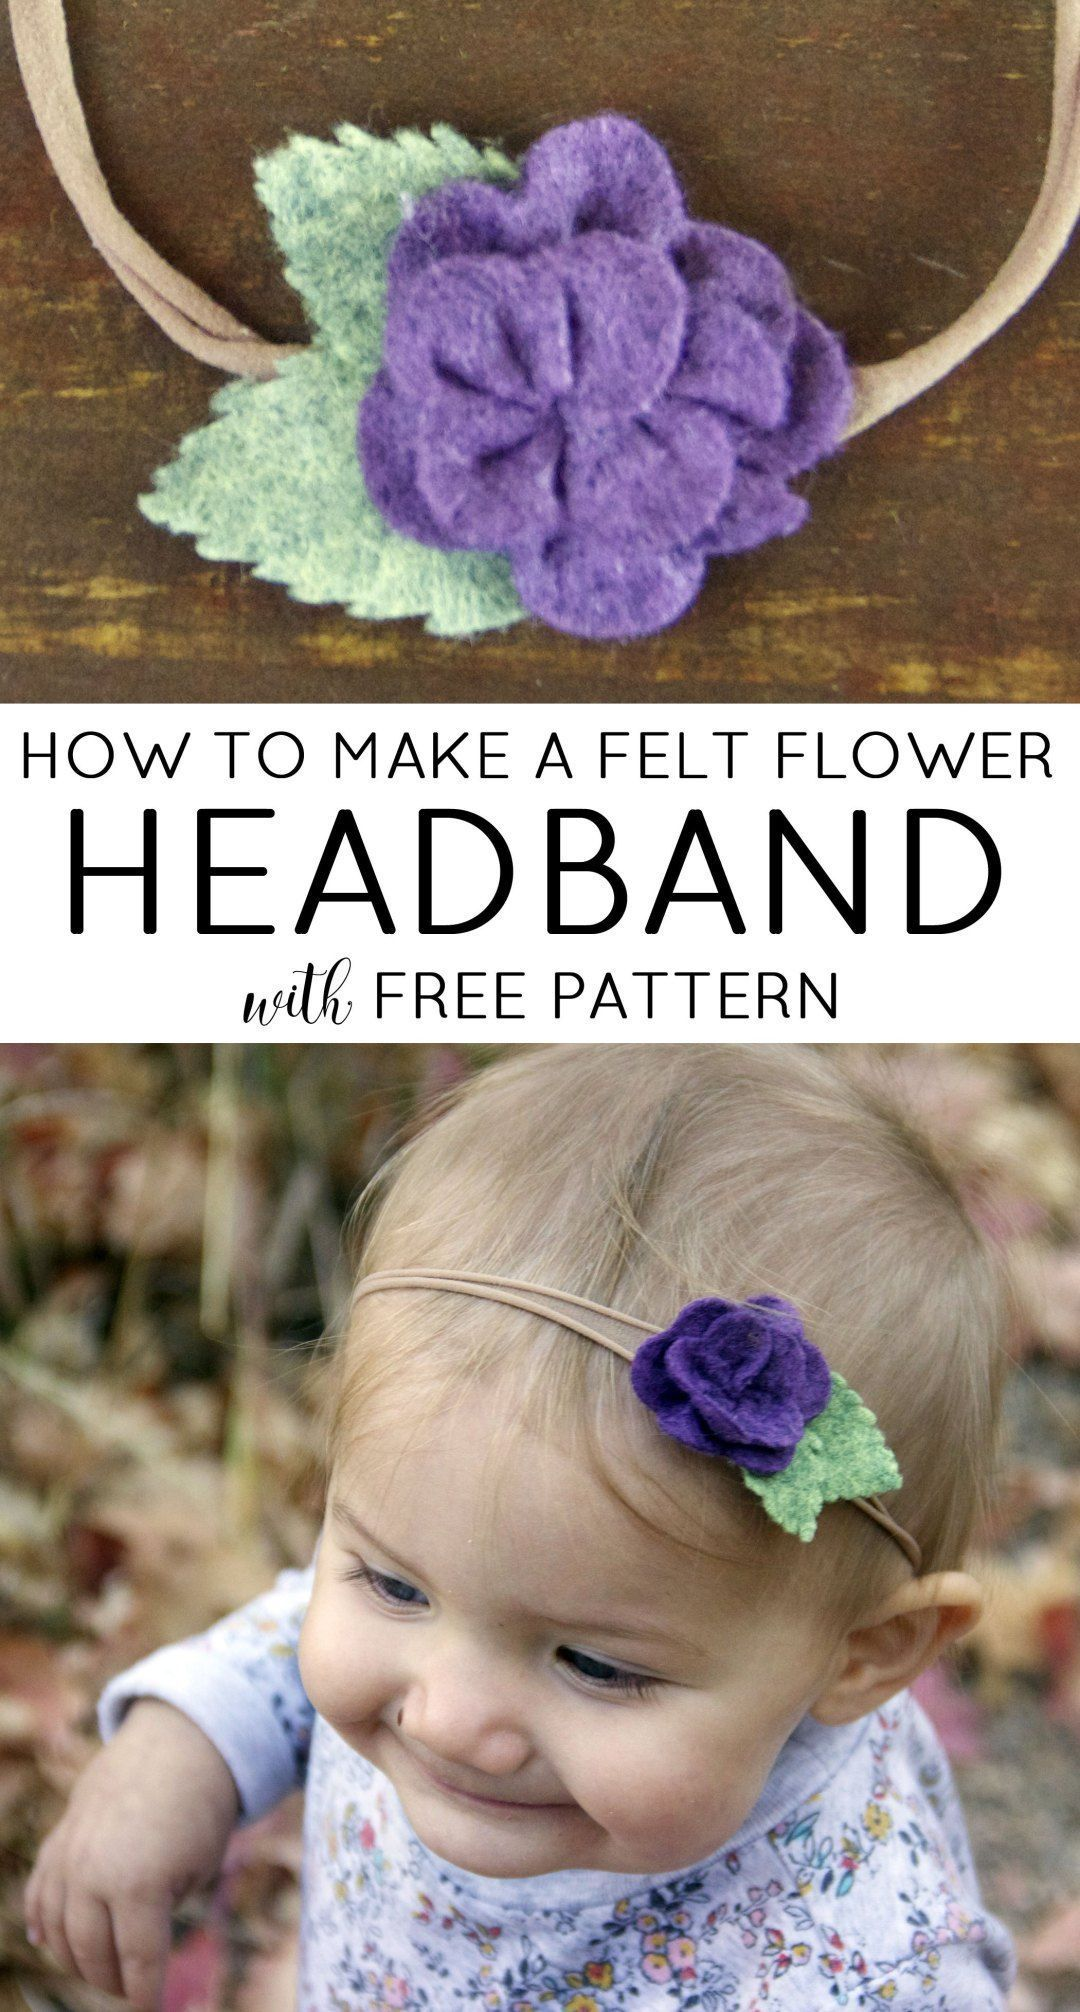 How To Make A Simple Rose Felt Flower Headband #diybabyheadbands How To Make A Simple Rose Felt Flower Headband » Jessie K Design #feltflowerheadbands How To Make A Simple Rose Felt Flower Headband #diybabyheadbands How To Make A Simple Rose Felt Flower Headband » Jessie K Design #feltflowerheadbands